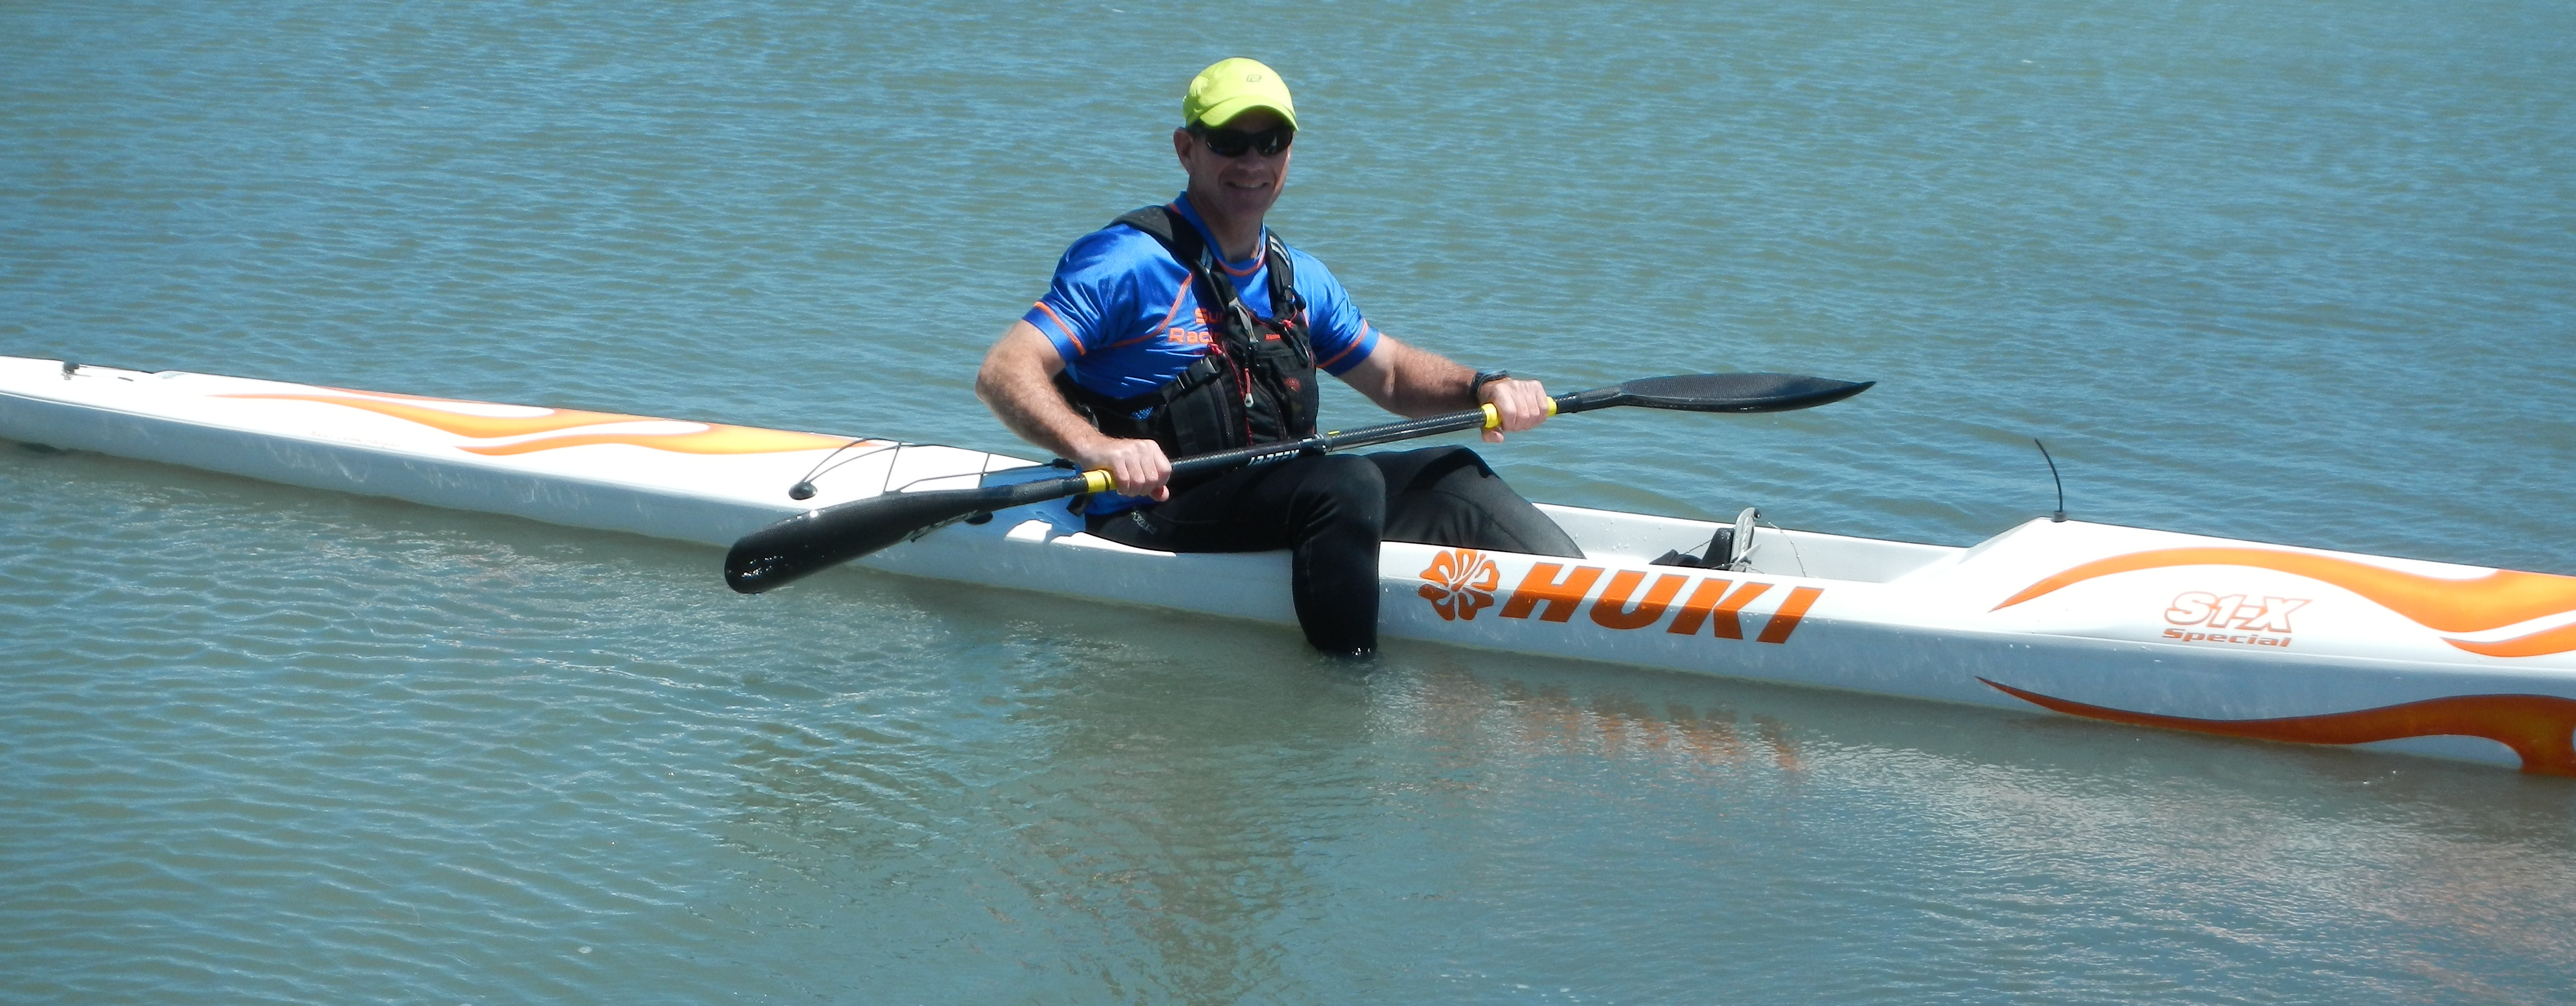 Demo at 2013US Surfski champs, S1X Special